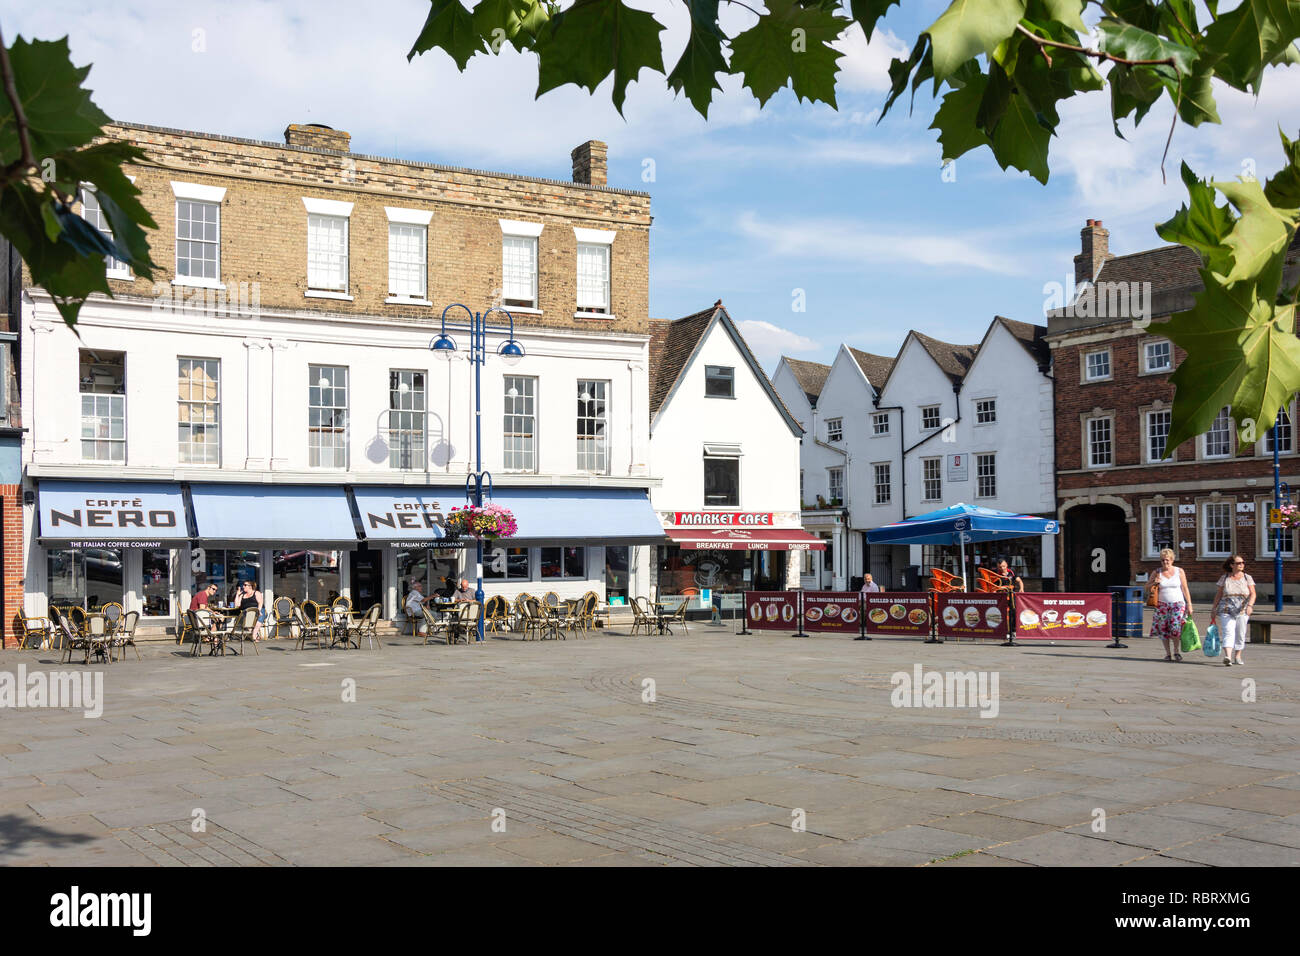 Market Square, St Neots, Cambridgeshire, England, United Kingdom - Stock Image